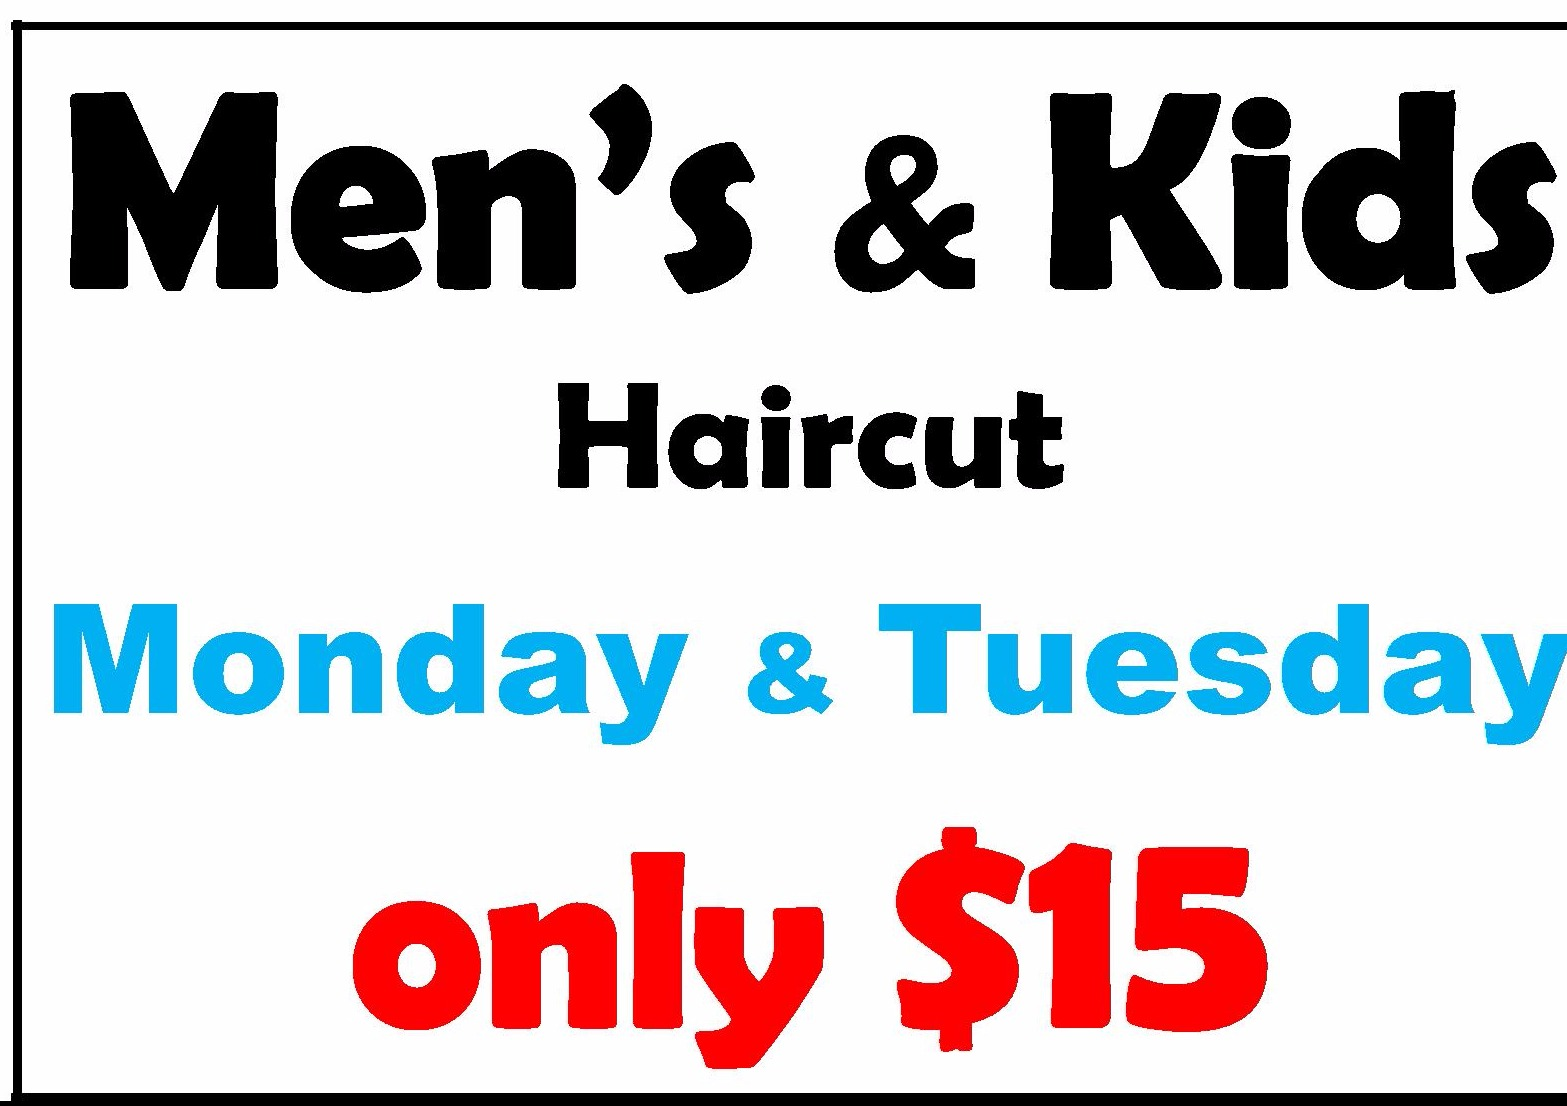 Men's & Kids $15 haircut